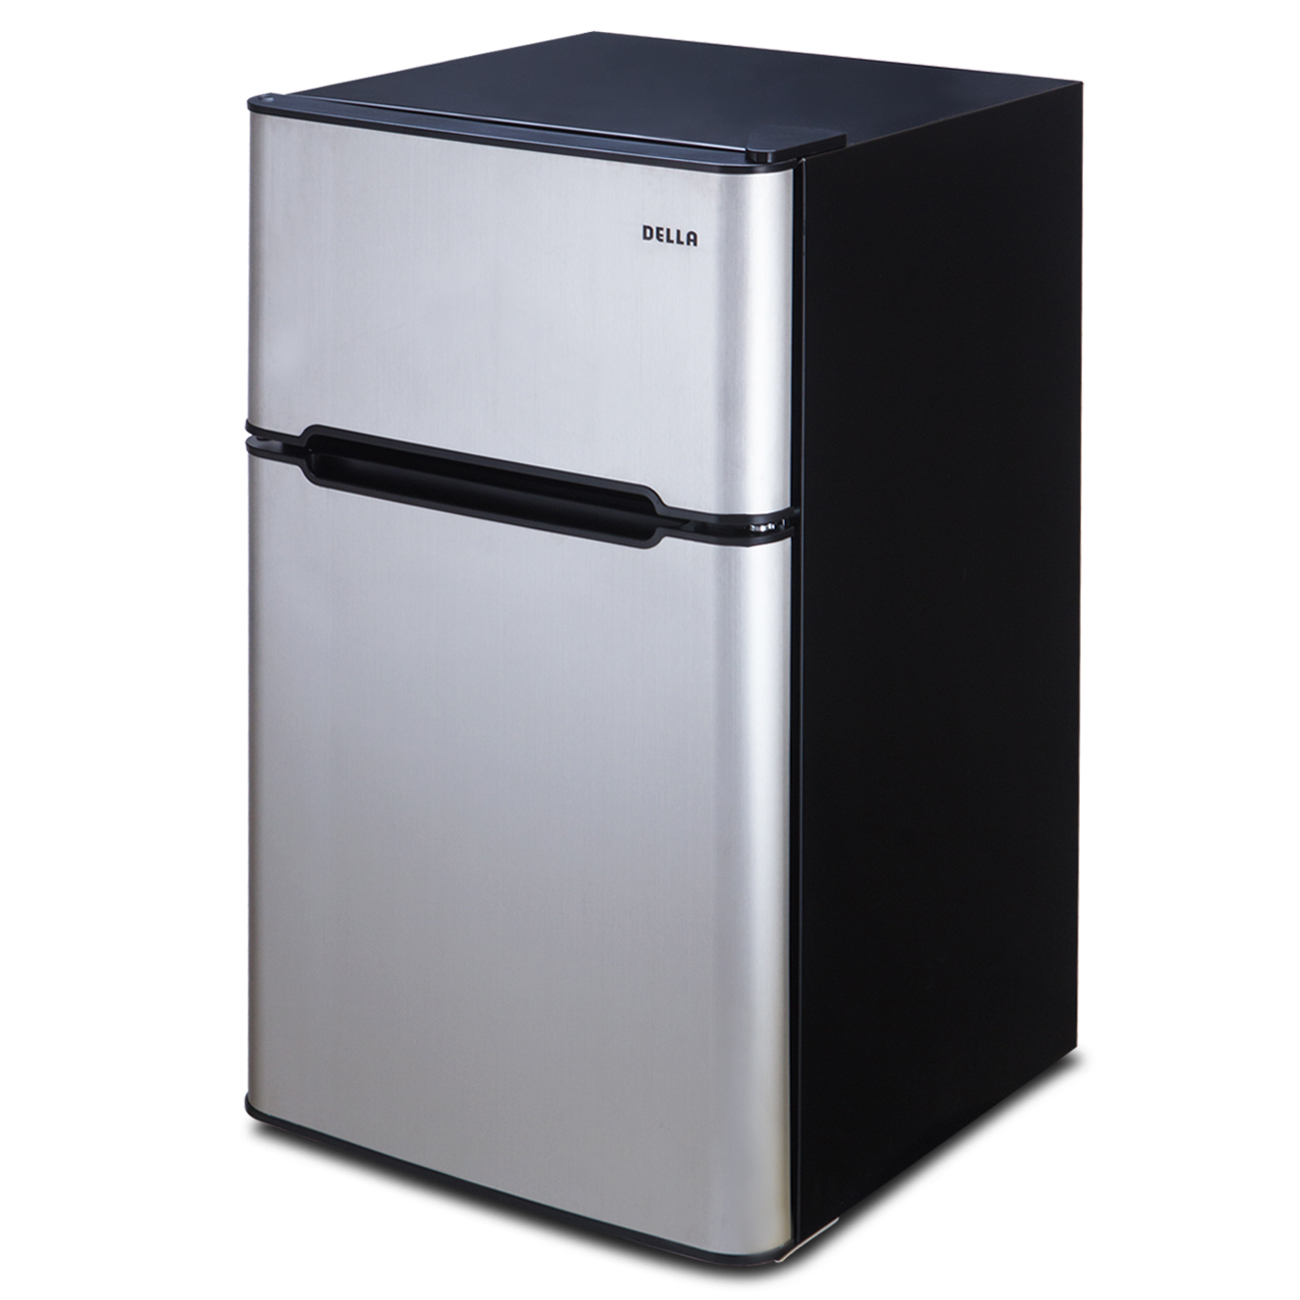 Expand your storage options for frozen foods with a new chest freezer from Sears. Stock up on frozen meats, vegetables and more with a new chest freezer.